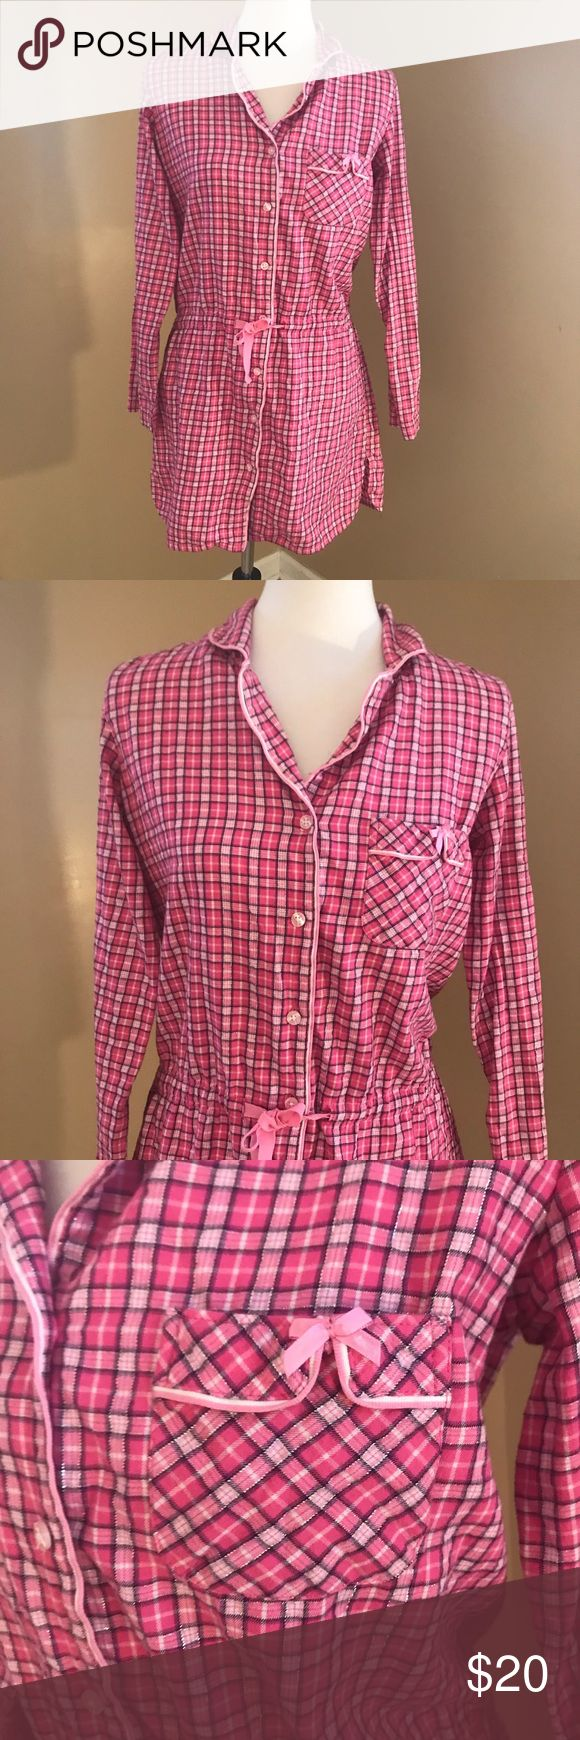 Victoria's Secret Pink Plaid Pjs Victoria's Secret Pink Plaid Shirt Dress. Shirt colors are pink and white with silver thread mixed in. Can be cinched at the waist by a string. Had a chest pocket with a tiny pink bow on it. Worn only once. Size XS but will fit a small. Pit to Pit: 20.5 inches. Offers always welcome! Victoria's Secret Intimates & Sleepwear